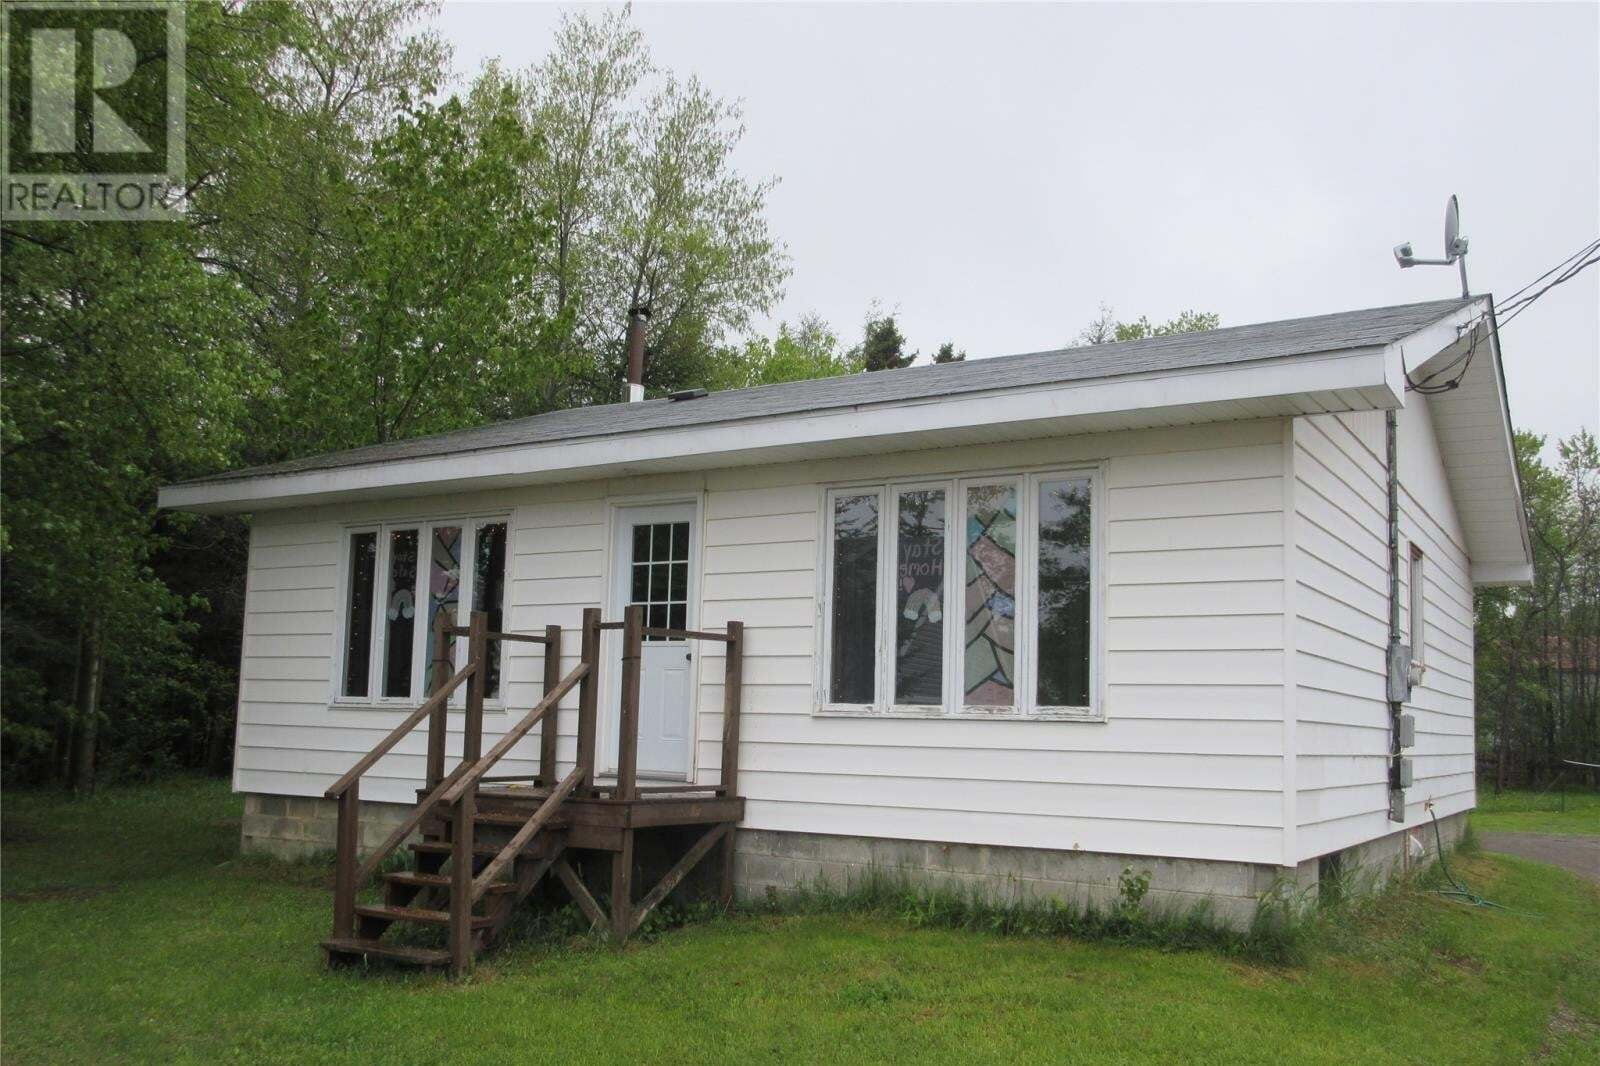 House for sale at 192 Main St Bishop's Falls Newfoundland - MLS: 1215897